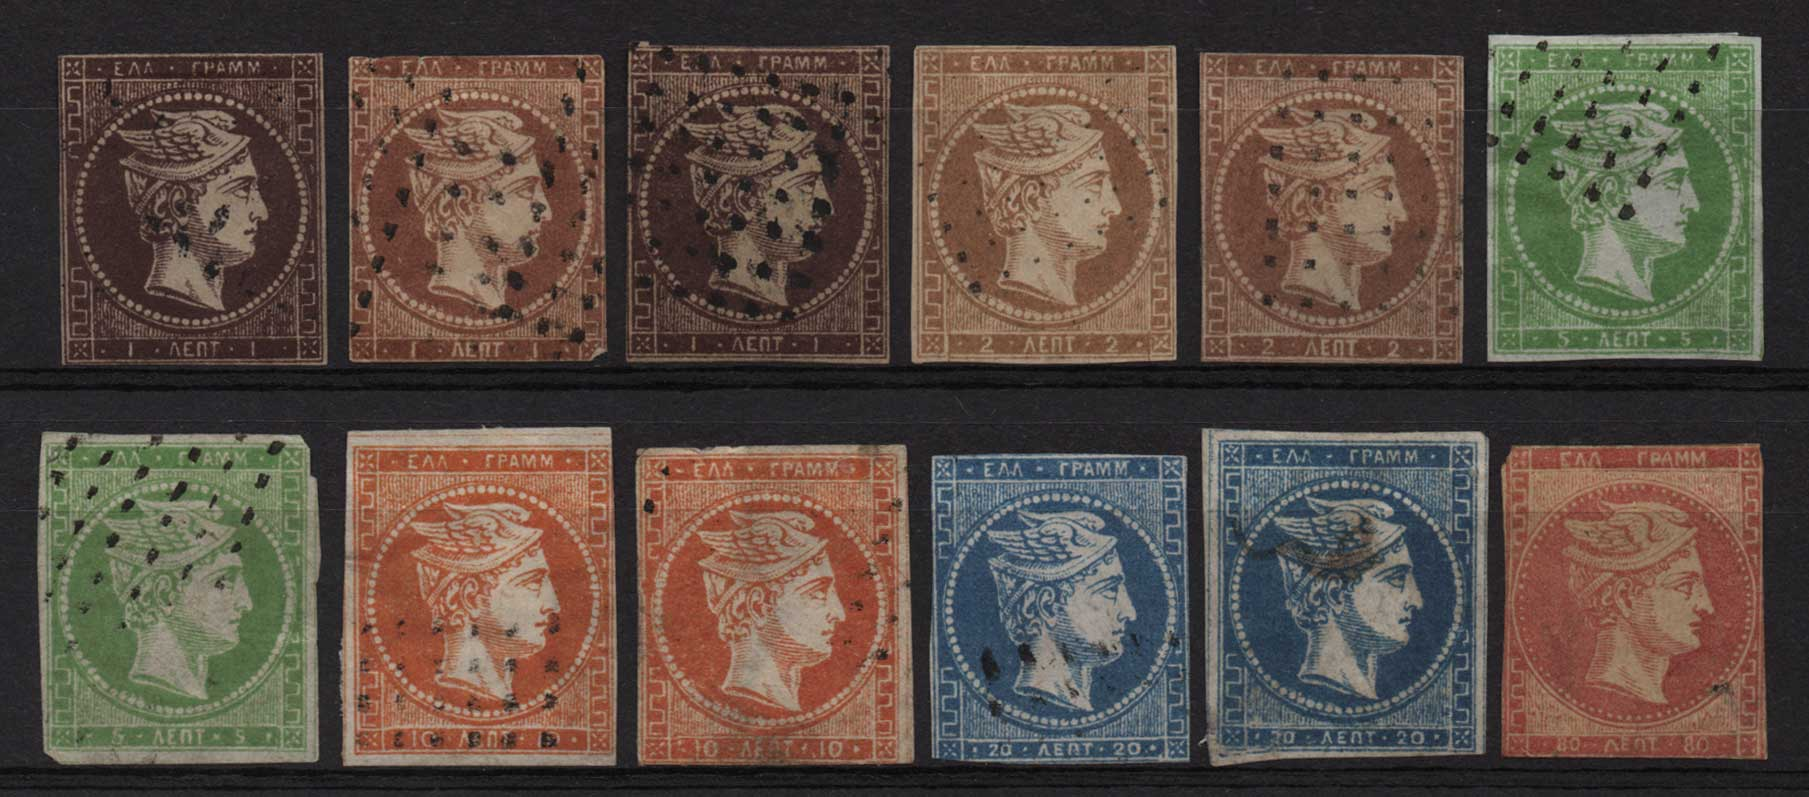 Lot 21 - GREECE- FORGERY forgery -  Athens Auctions Public Auction 64 General Stamp Sale